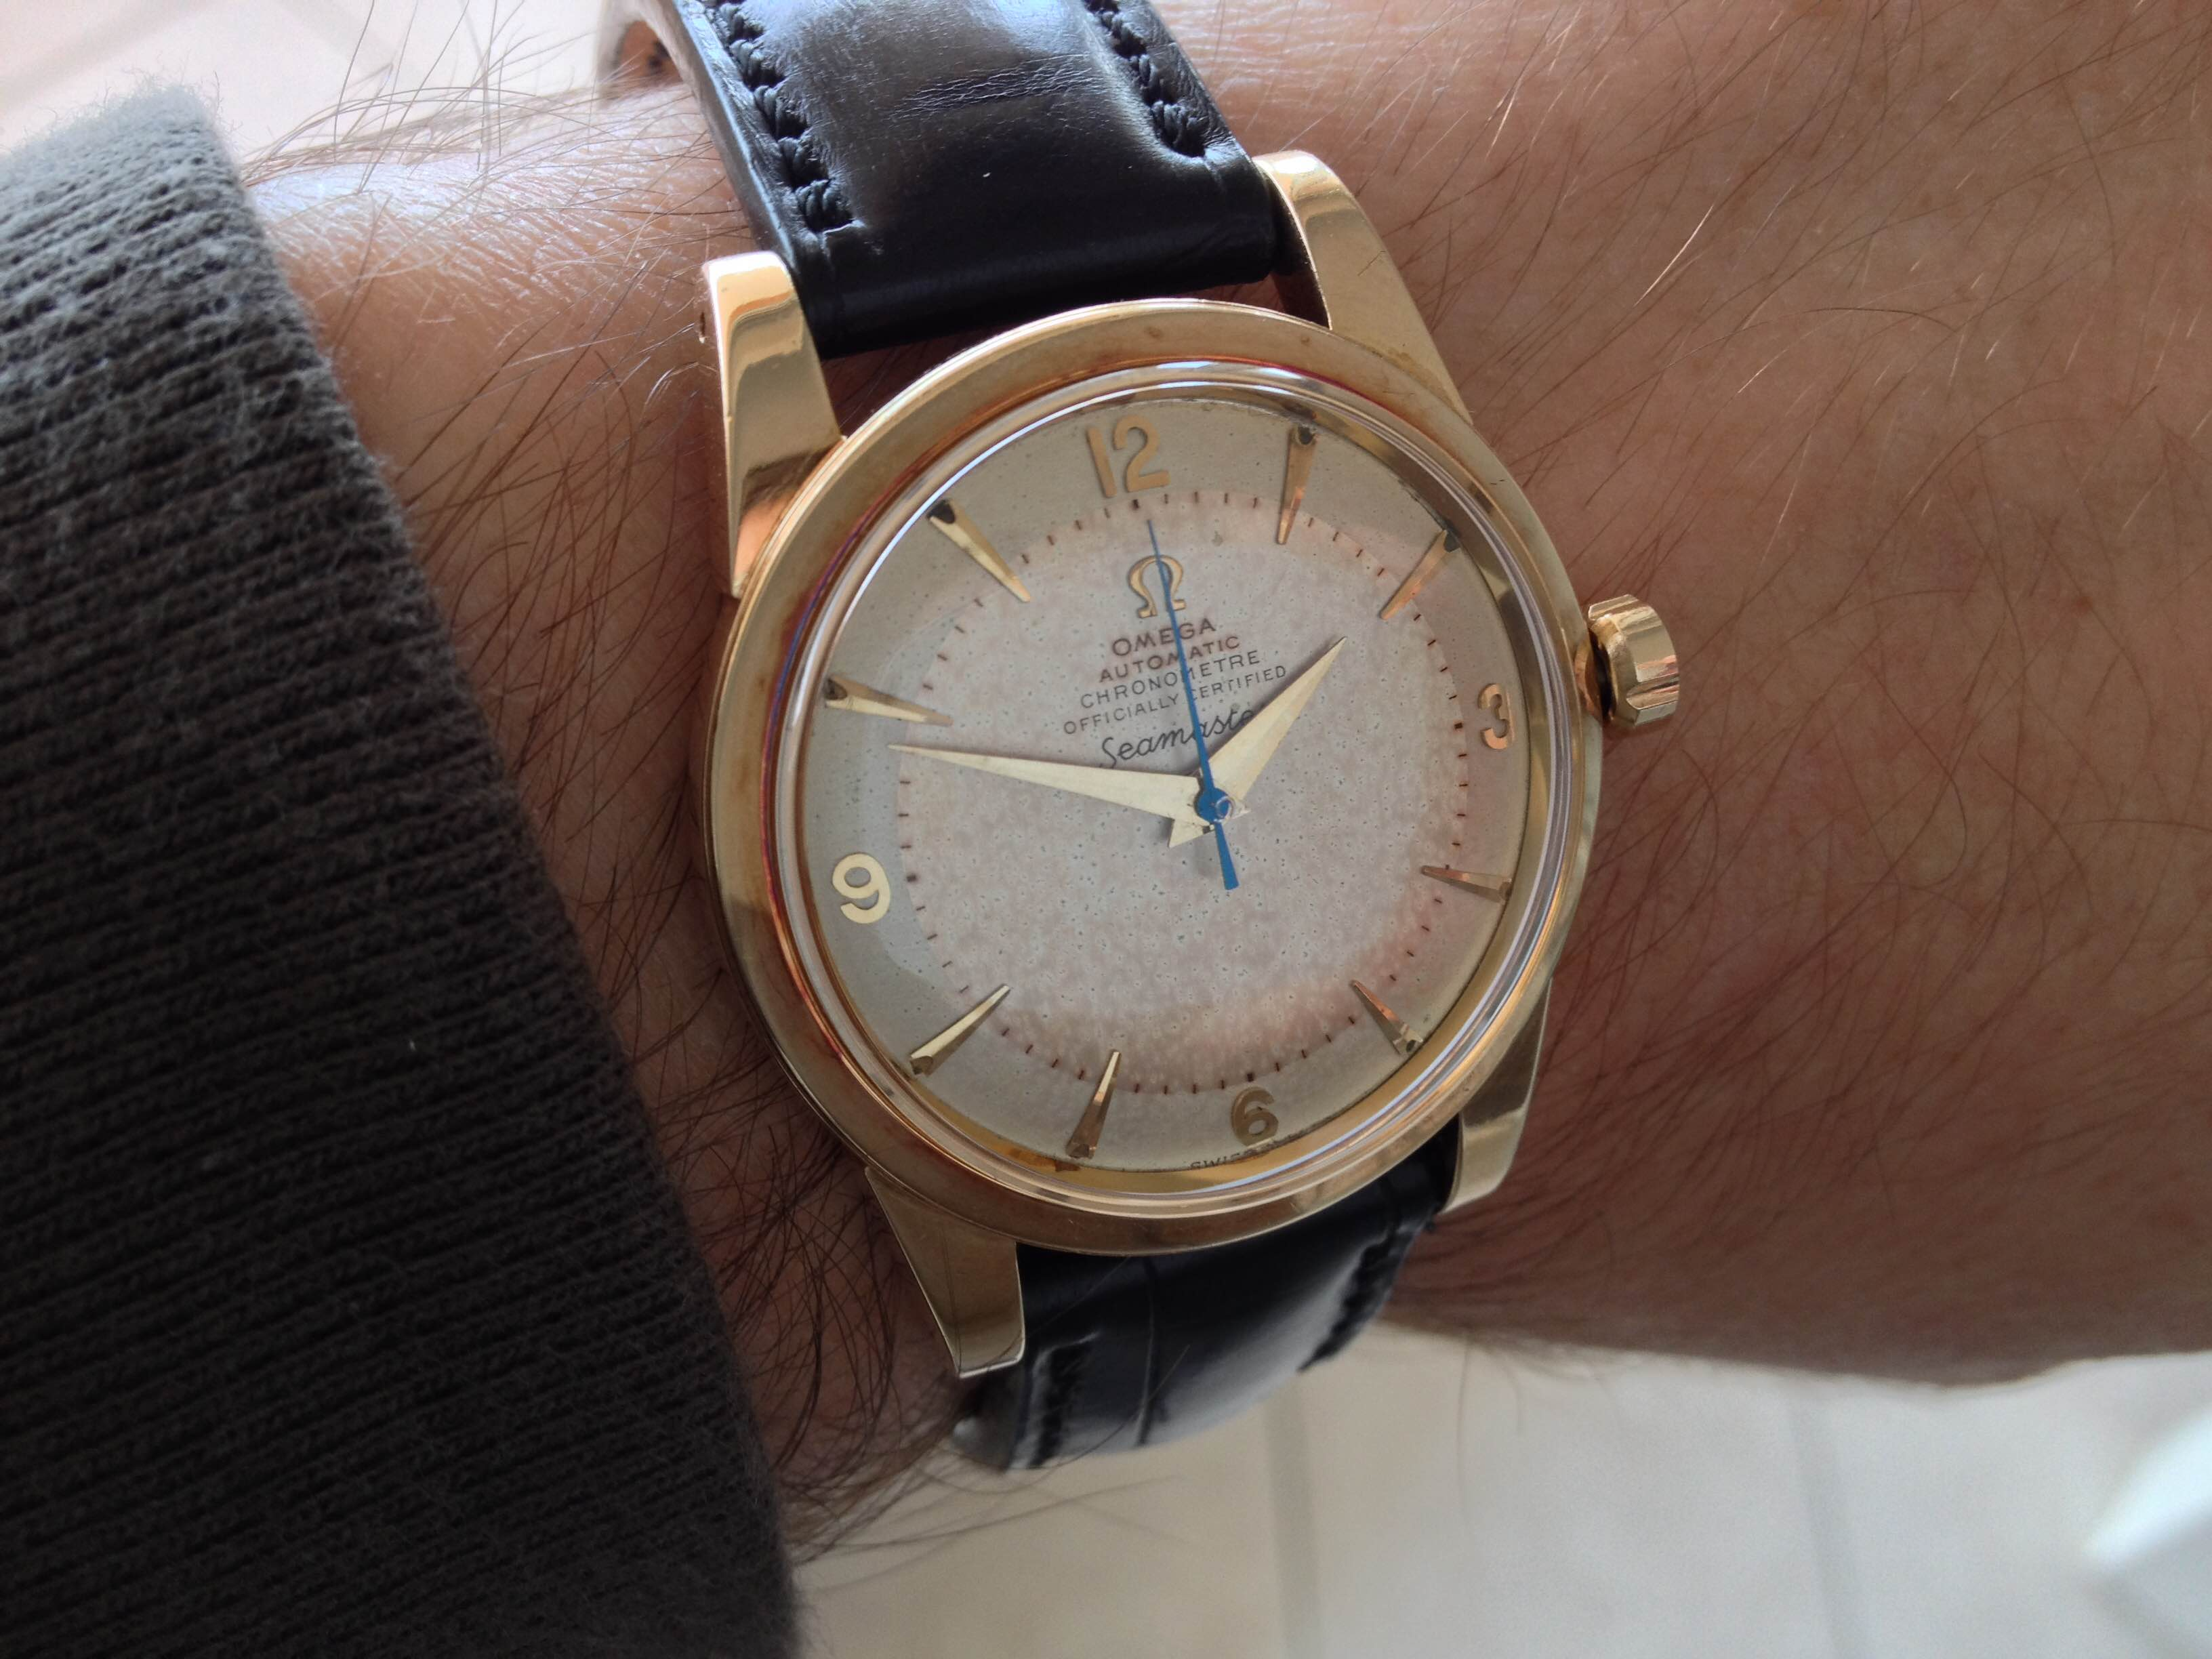 352RG unusual sweeping second hand color (or patina?) | Omega Forums